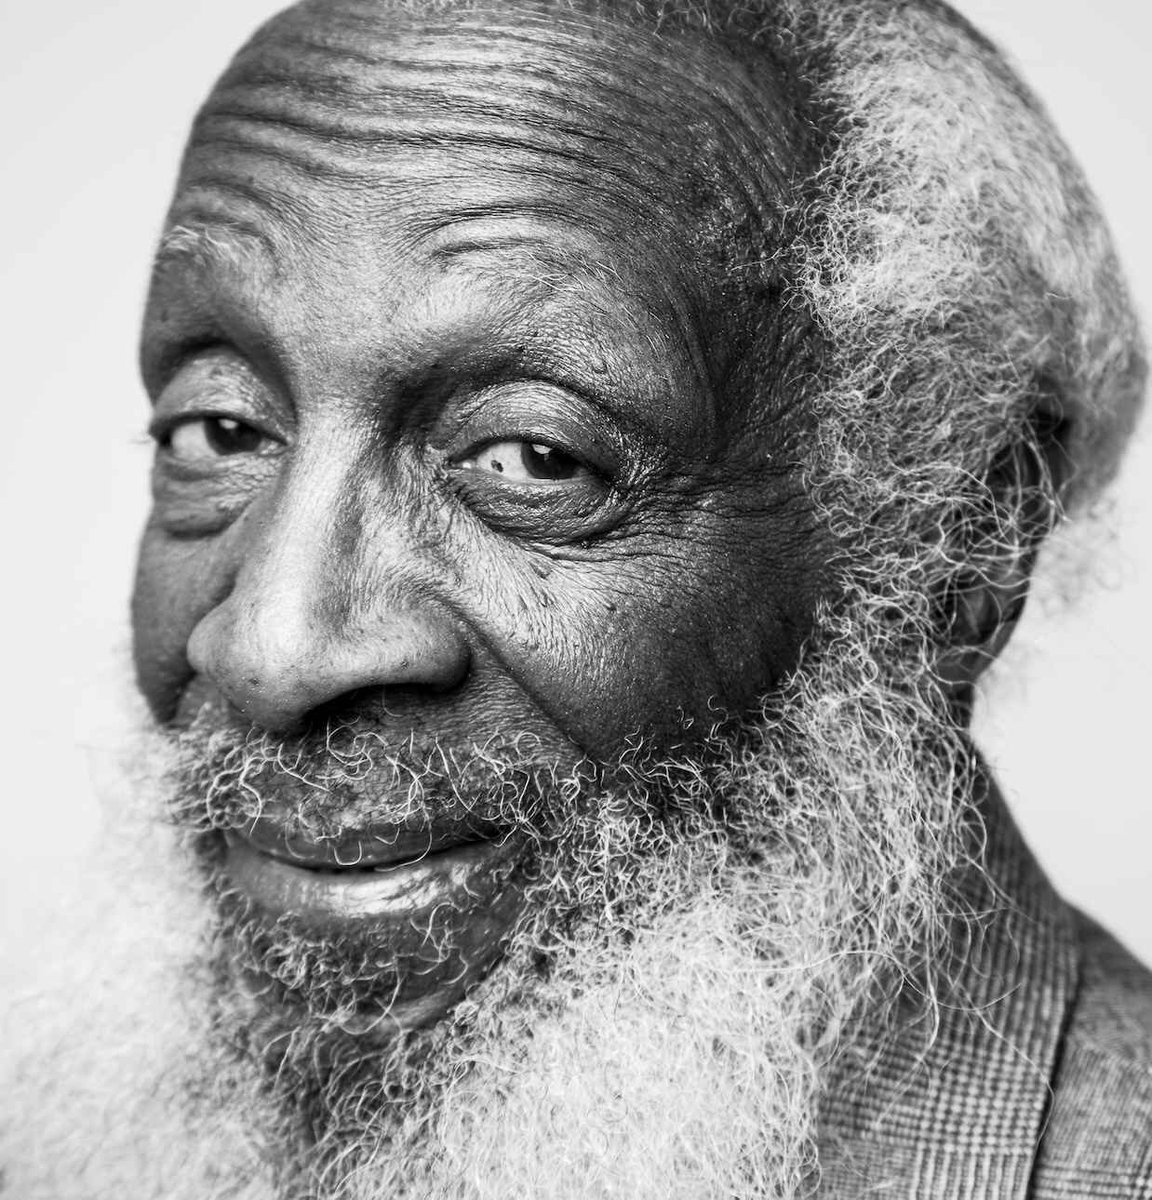 R.I.P Dickgory #RIPDickGregory https://t.co/zGc82iy2g4